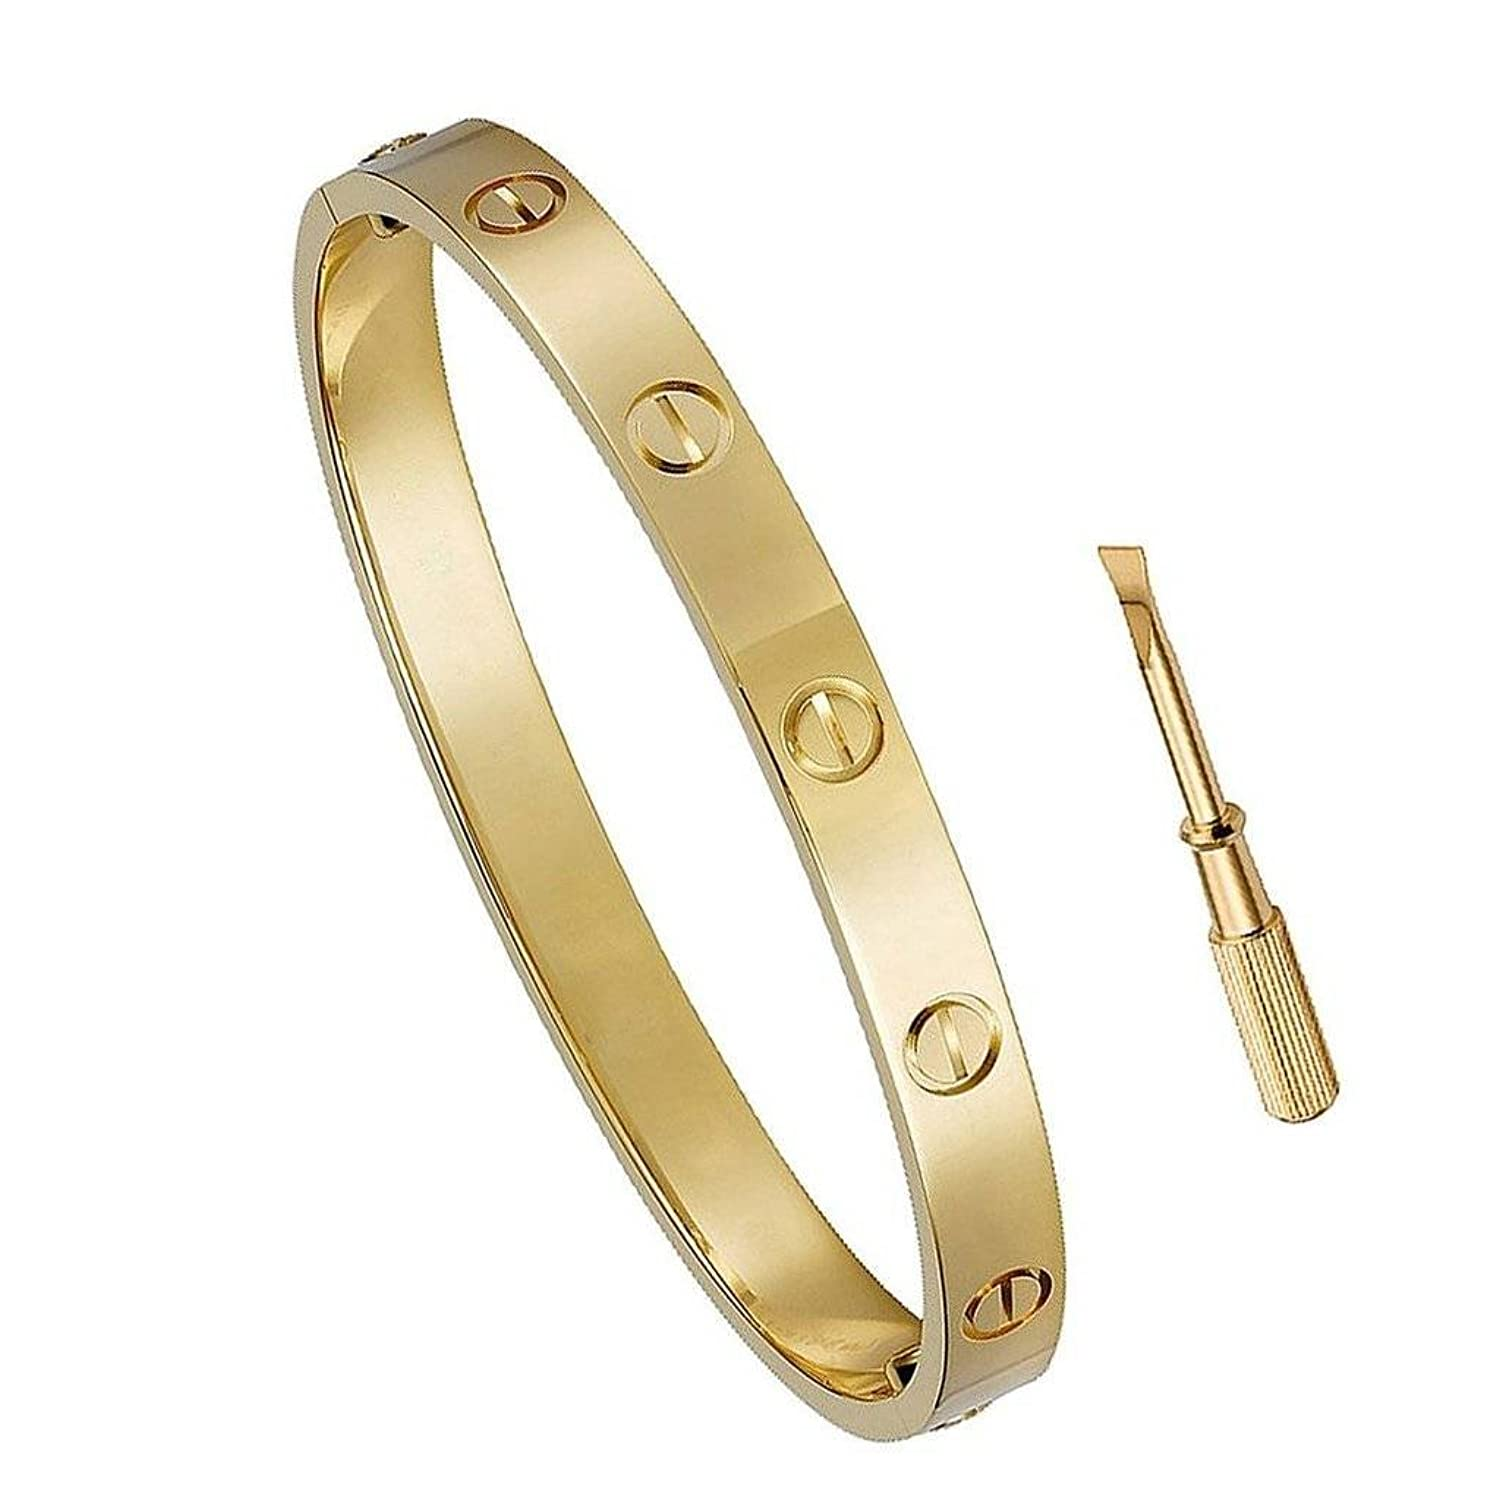 Z Racle Loveバングルブレスレットステンレススチールwith Screw – Best Gift For Love ピンク B07D3JQBGK Yellow Gold 7.5IN|7.5 インチ Yellow Gold 7.5IN